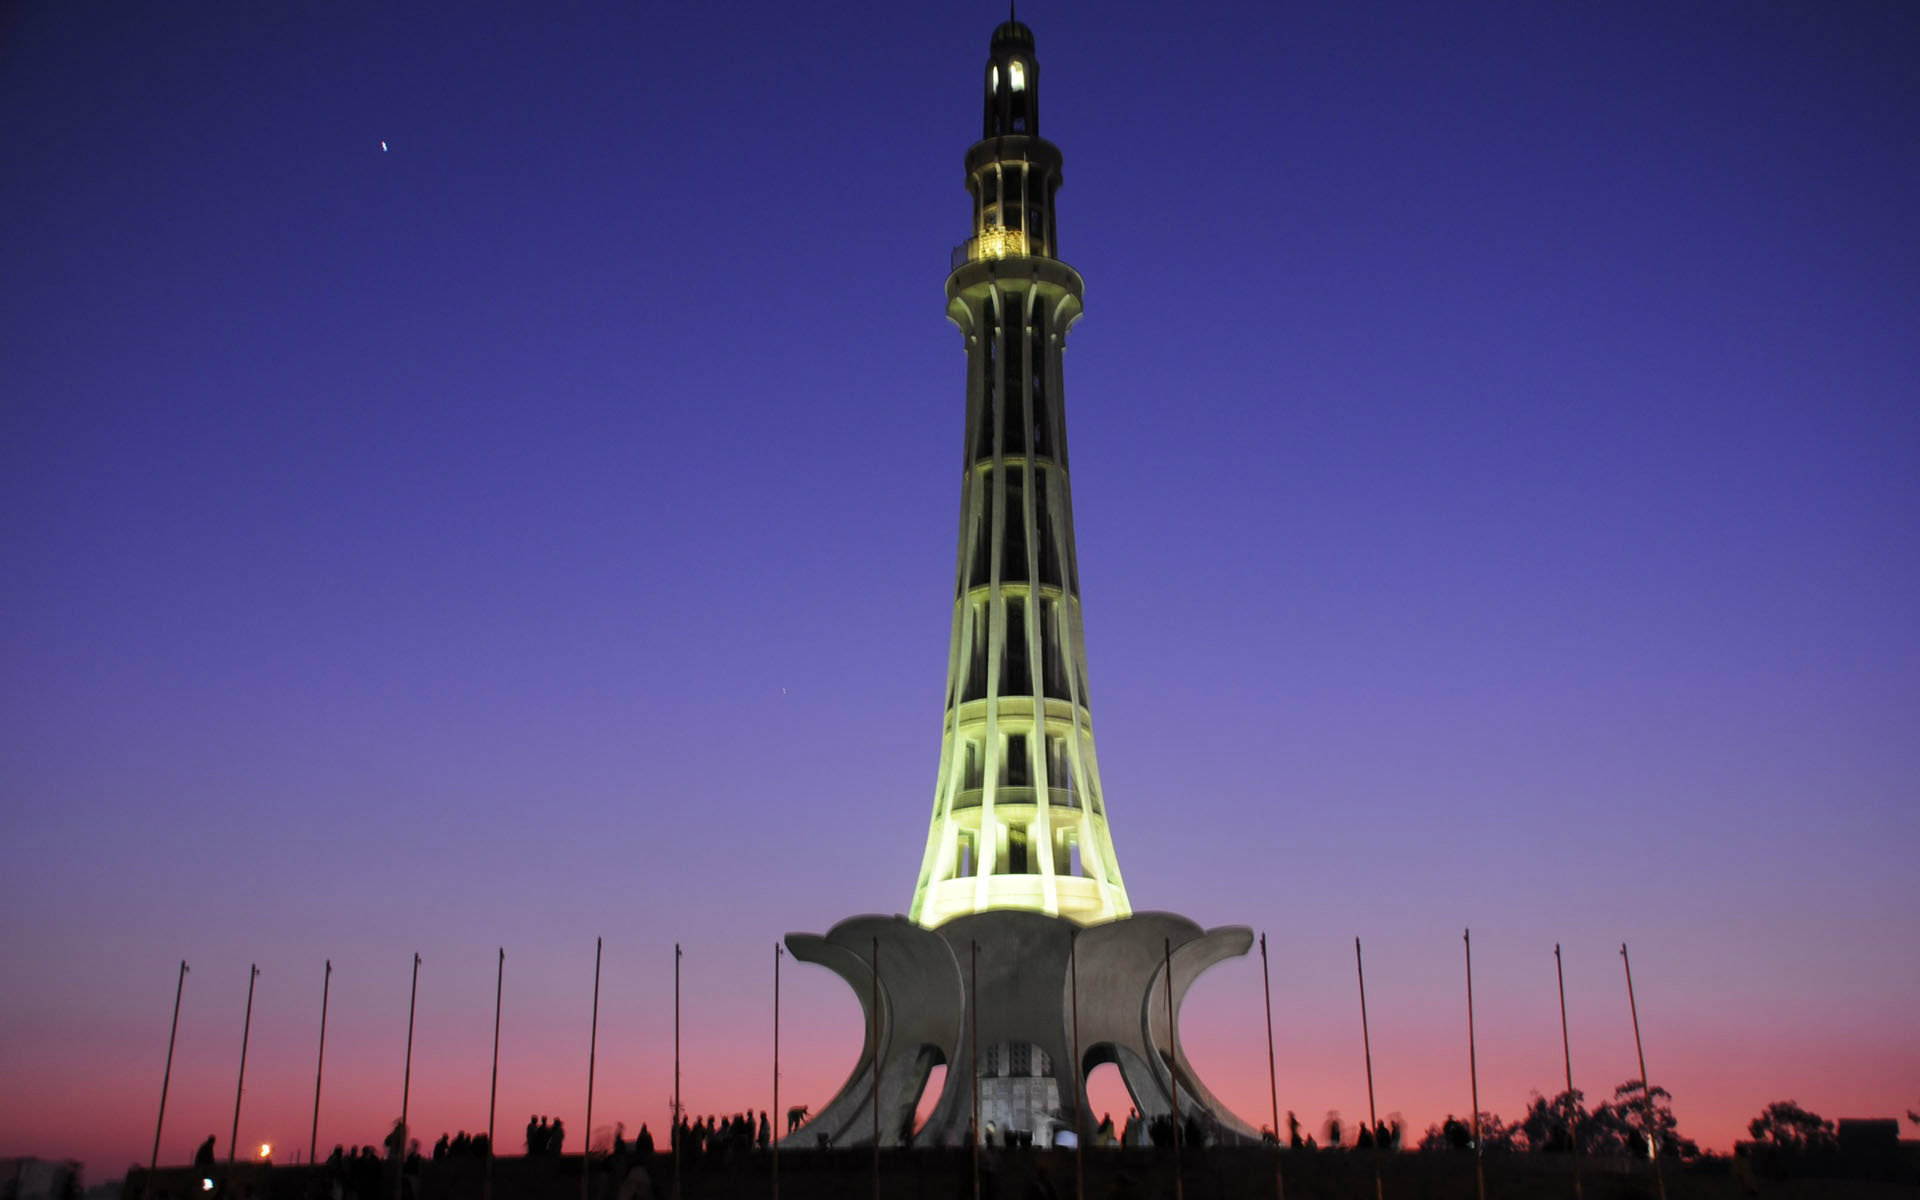 Minar e Pakistan HD Wallpapers Most HD Wallpapers Pictures Desktop 1920x1200